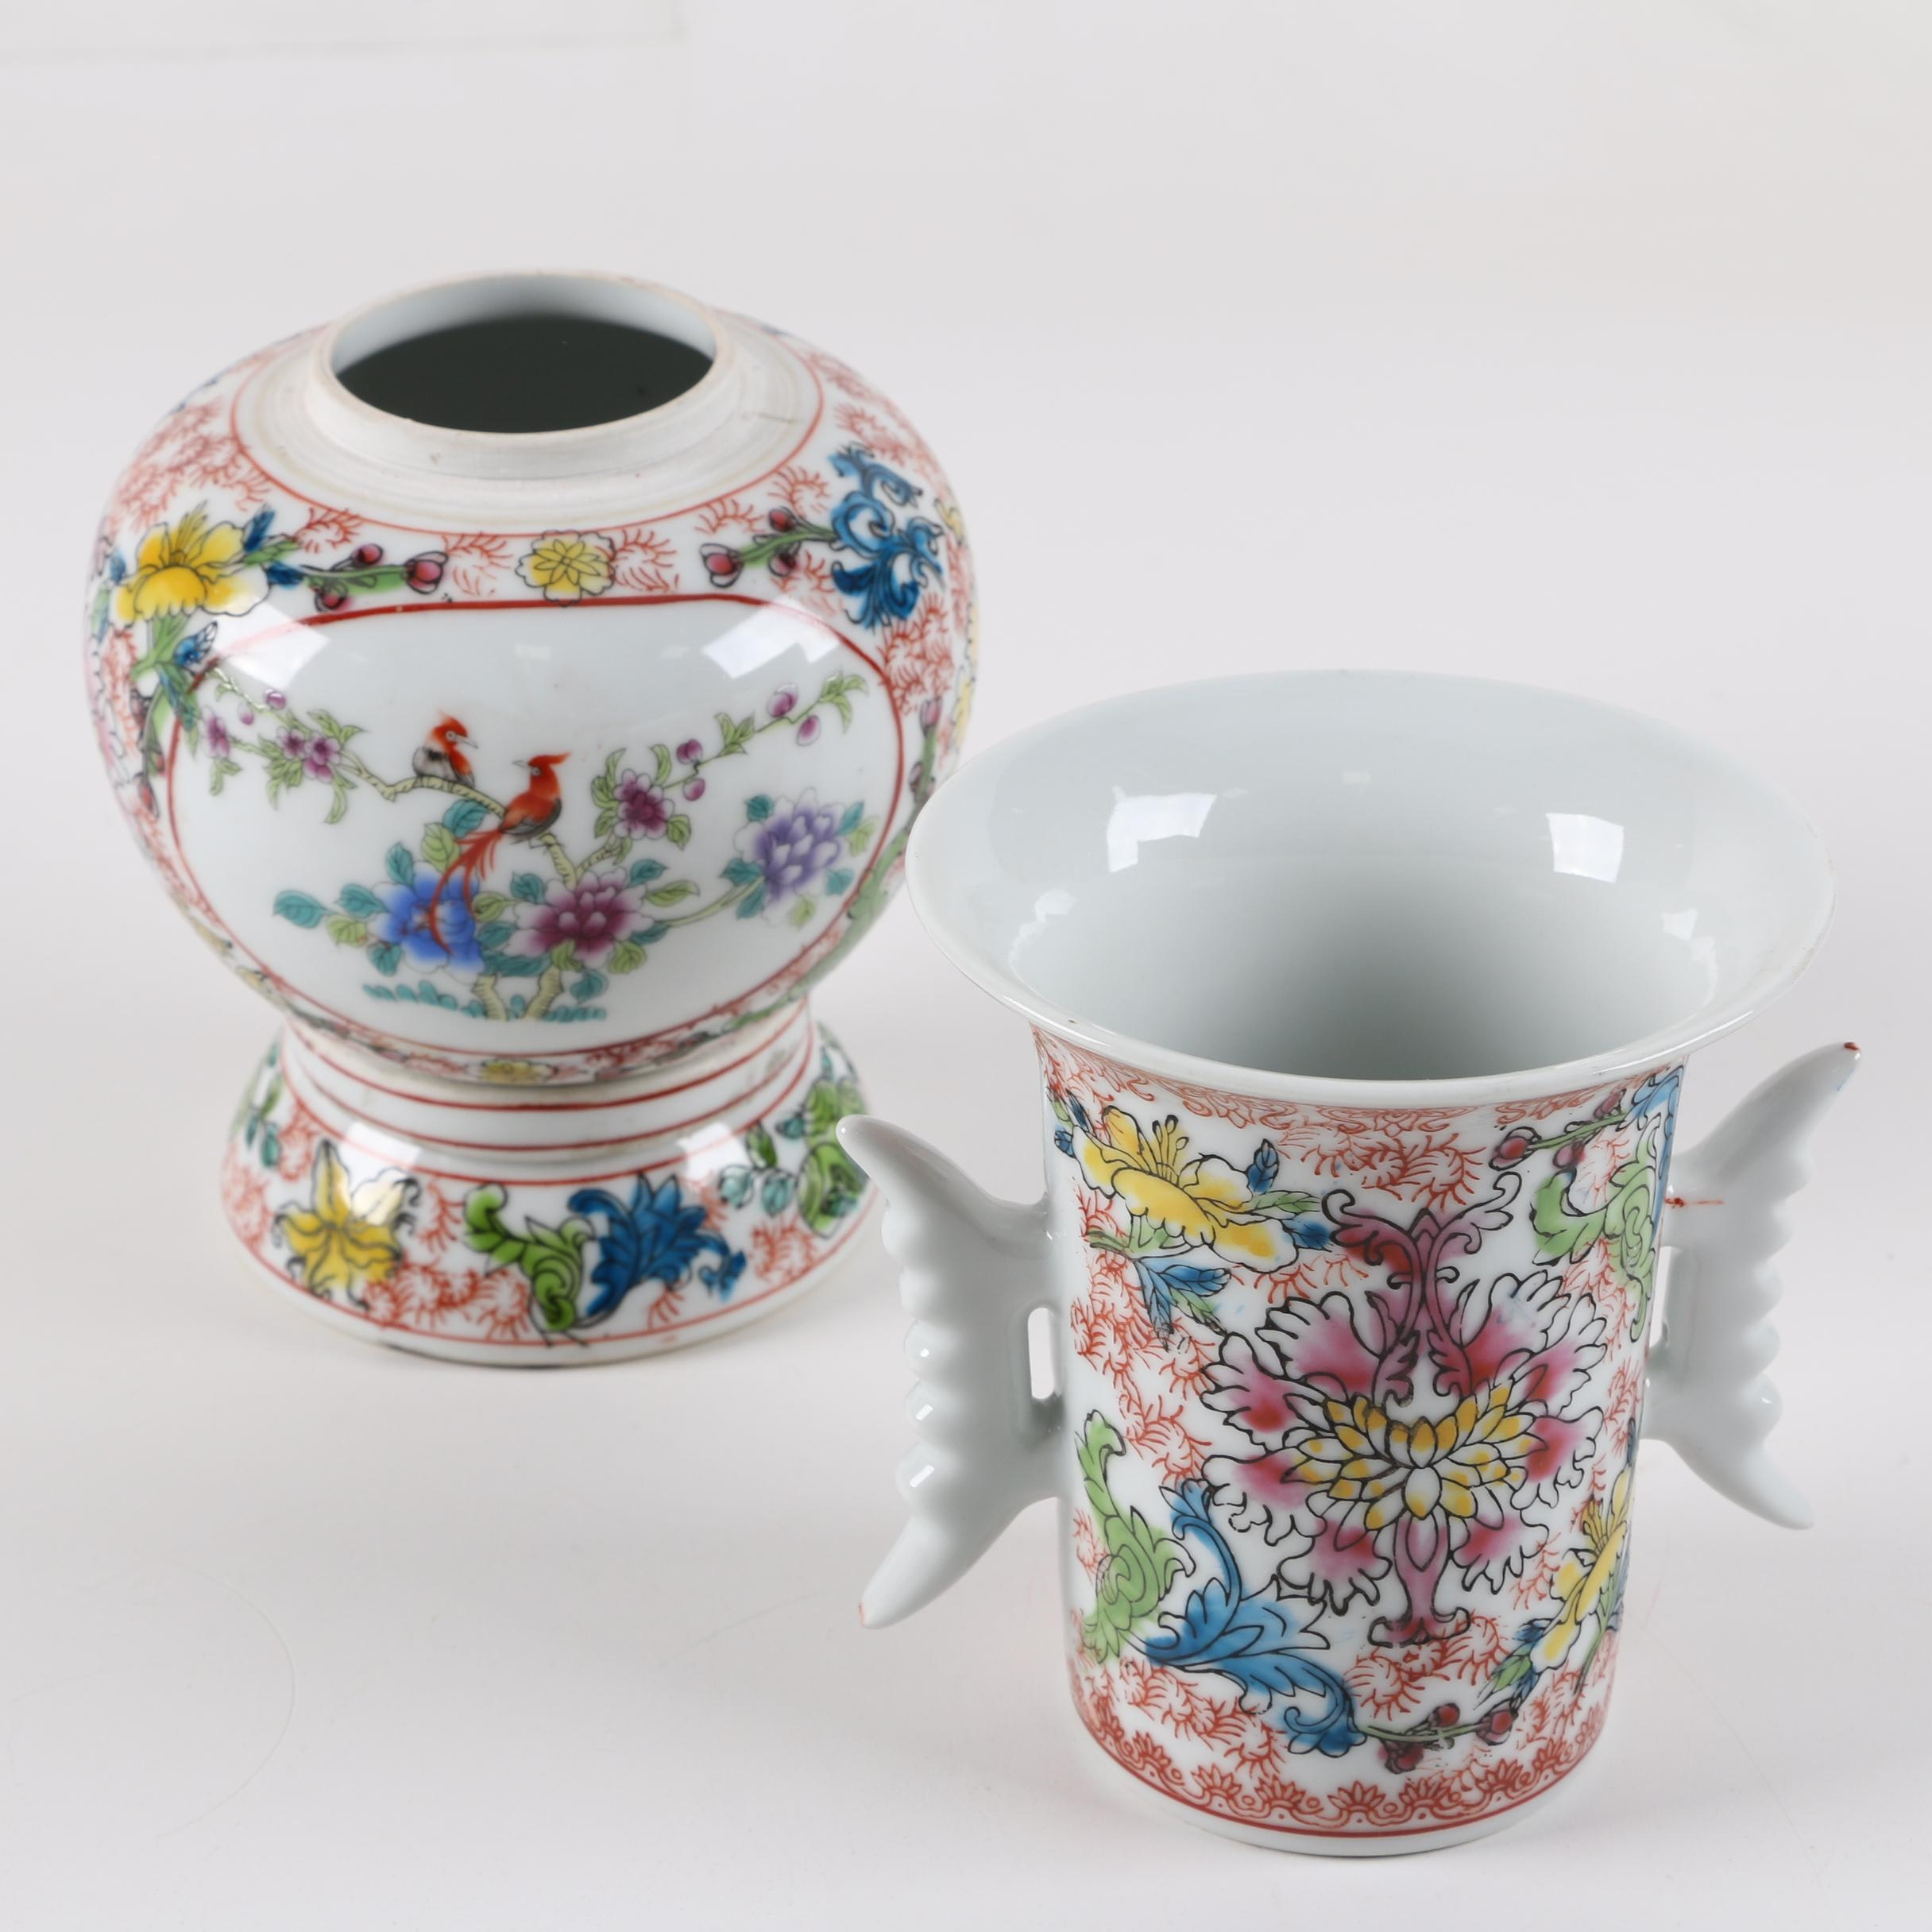 Chinese Porcelain Cup and lidded Jar